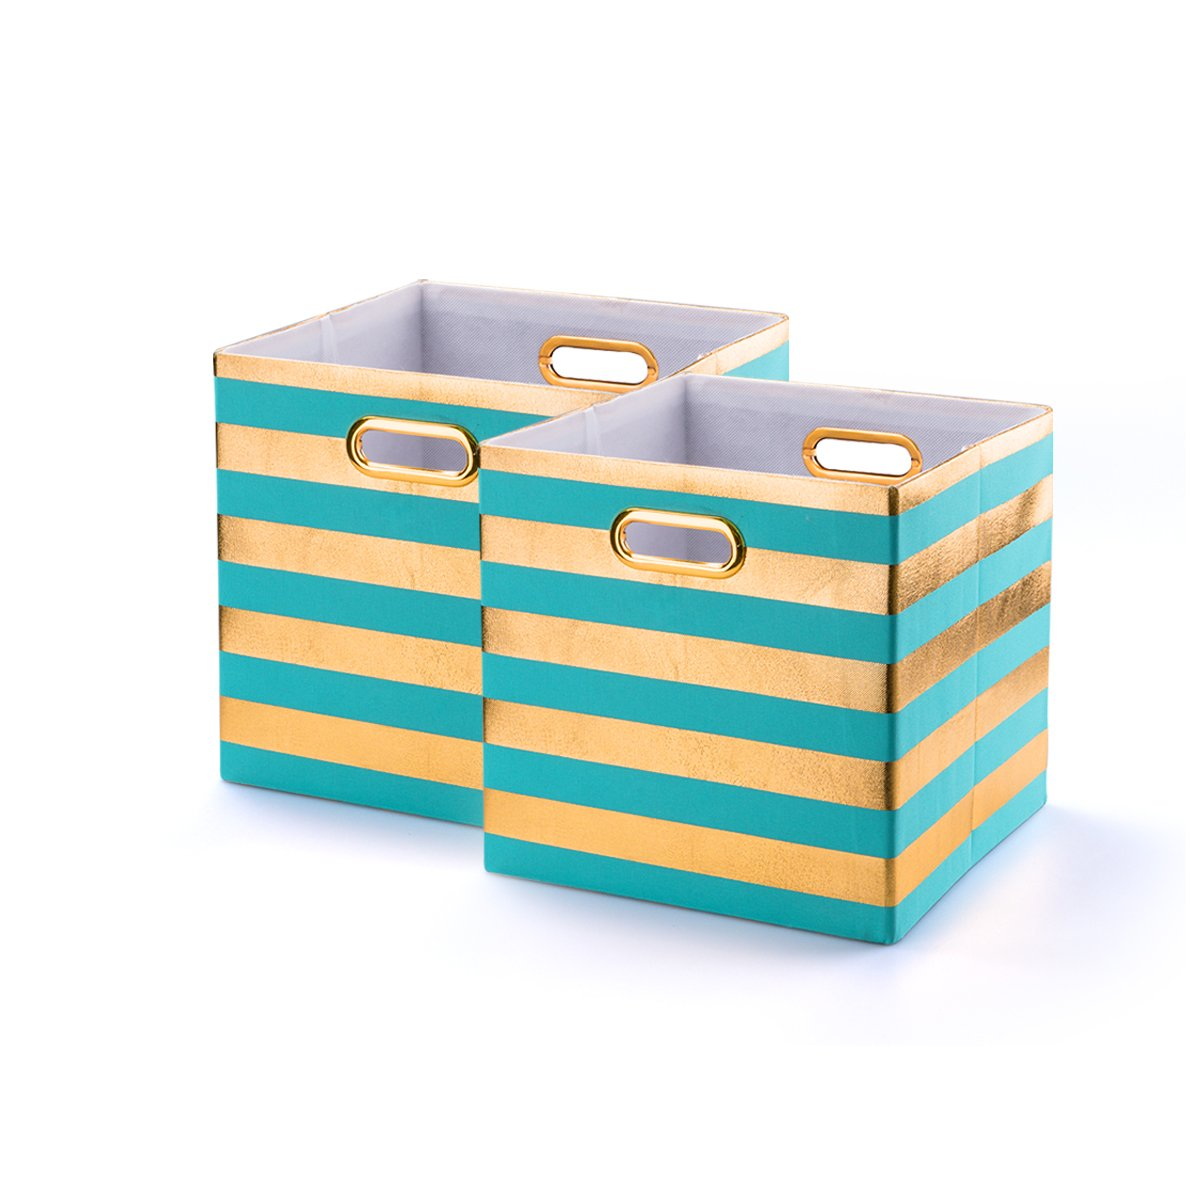 BAIST Decorative Storage Cubes,Pretty Cheap Foldable Linen Fabric Bed Storage Bins Baskets For Toys Clothes Towel First Day of School-2 pack,Aqua Stripe